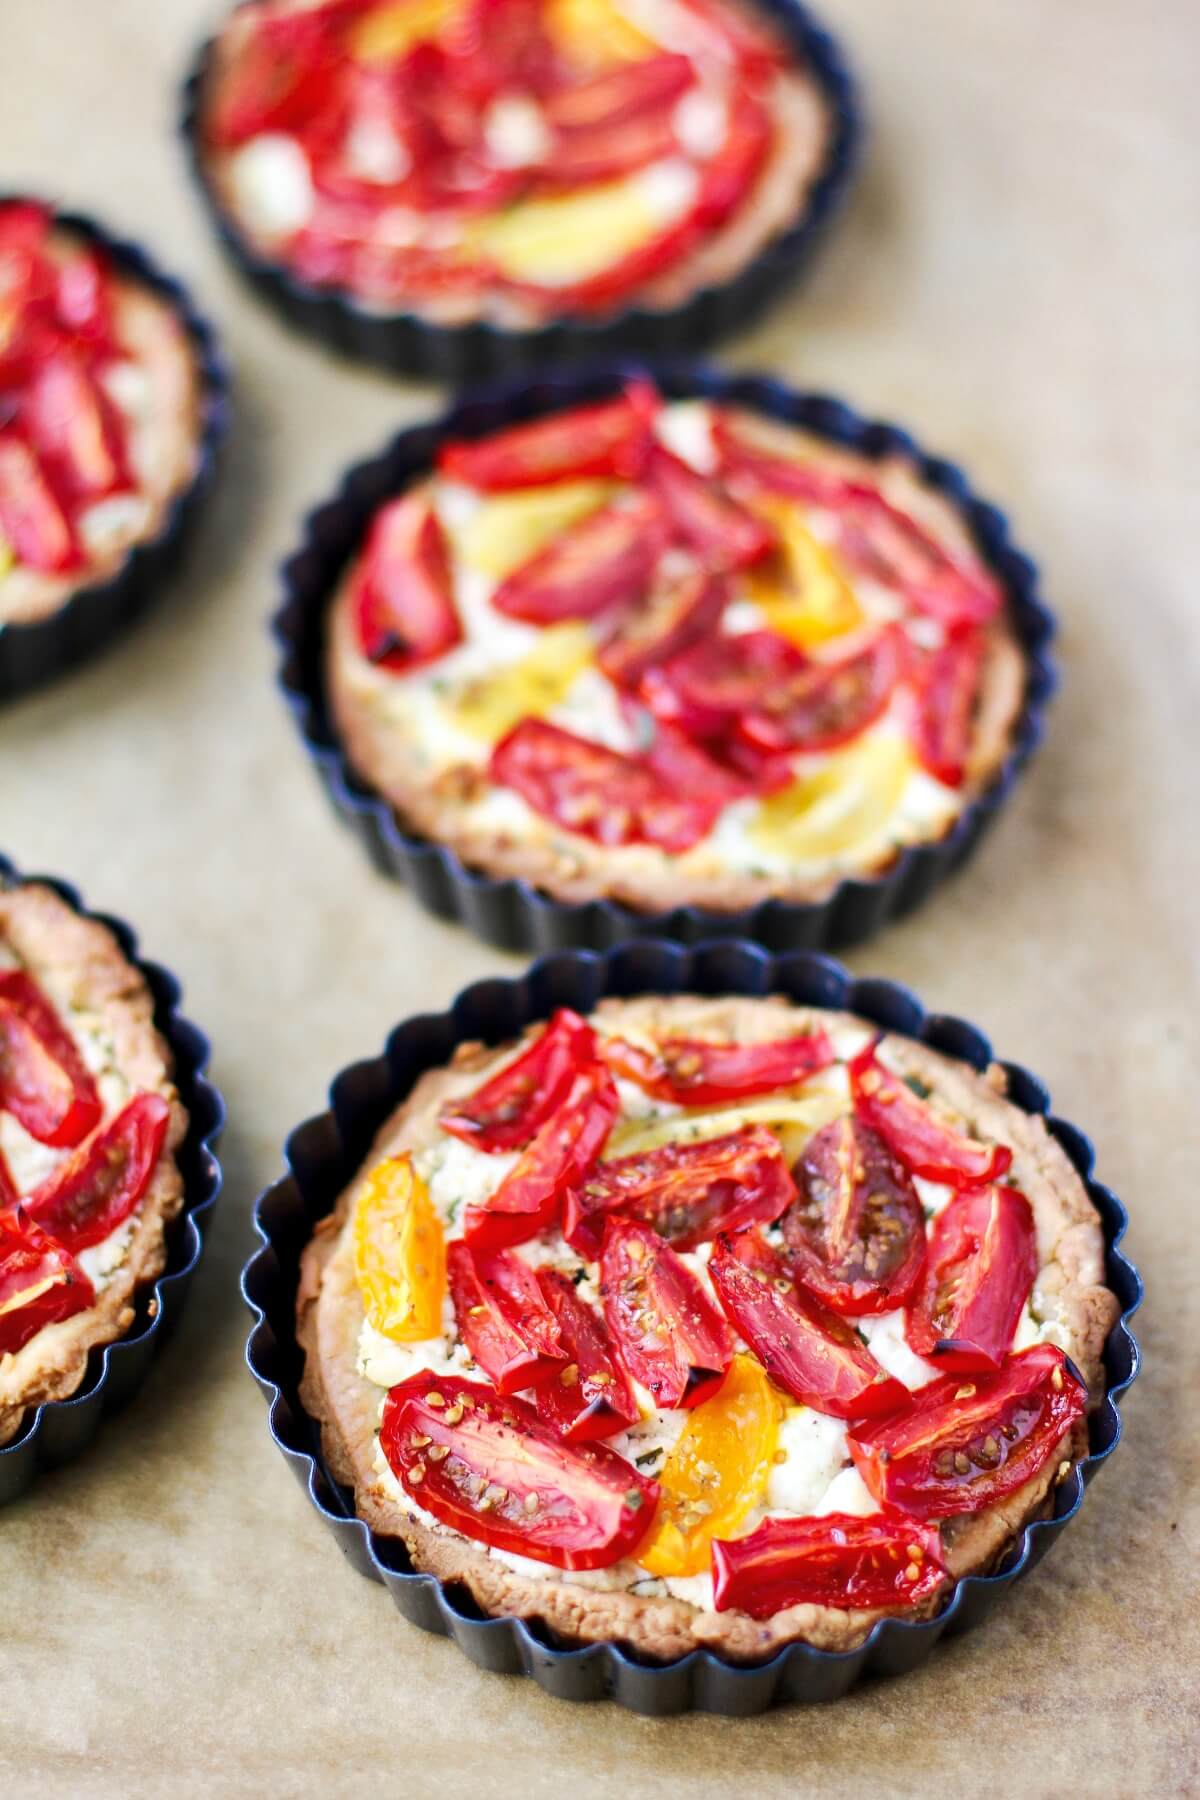 Tomato and Goat Cheese Tarts after baking.